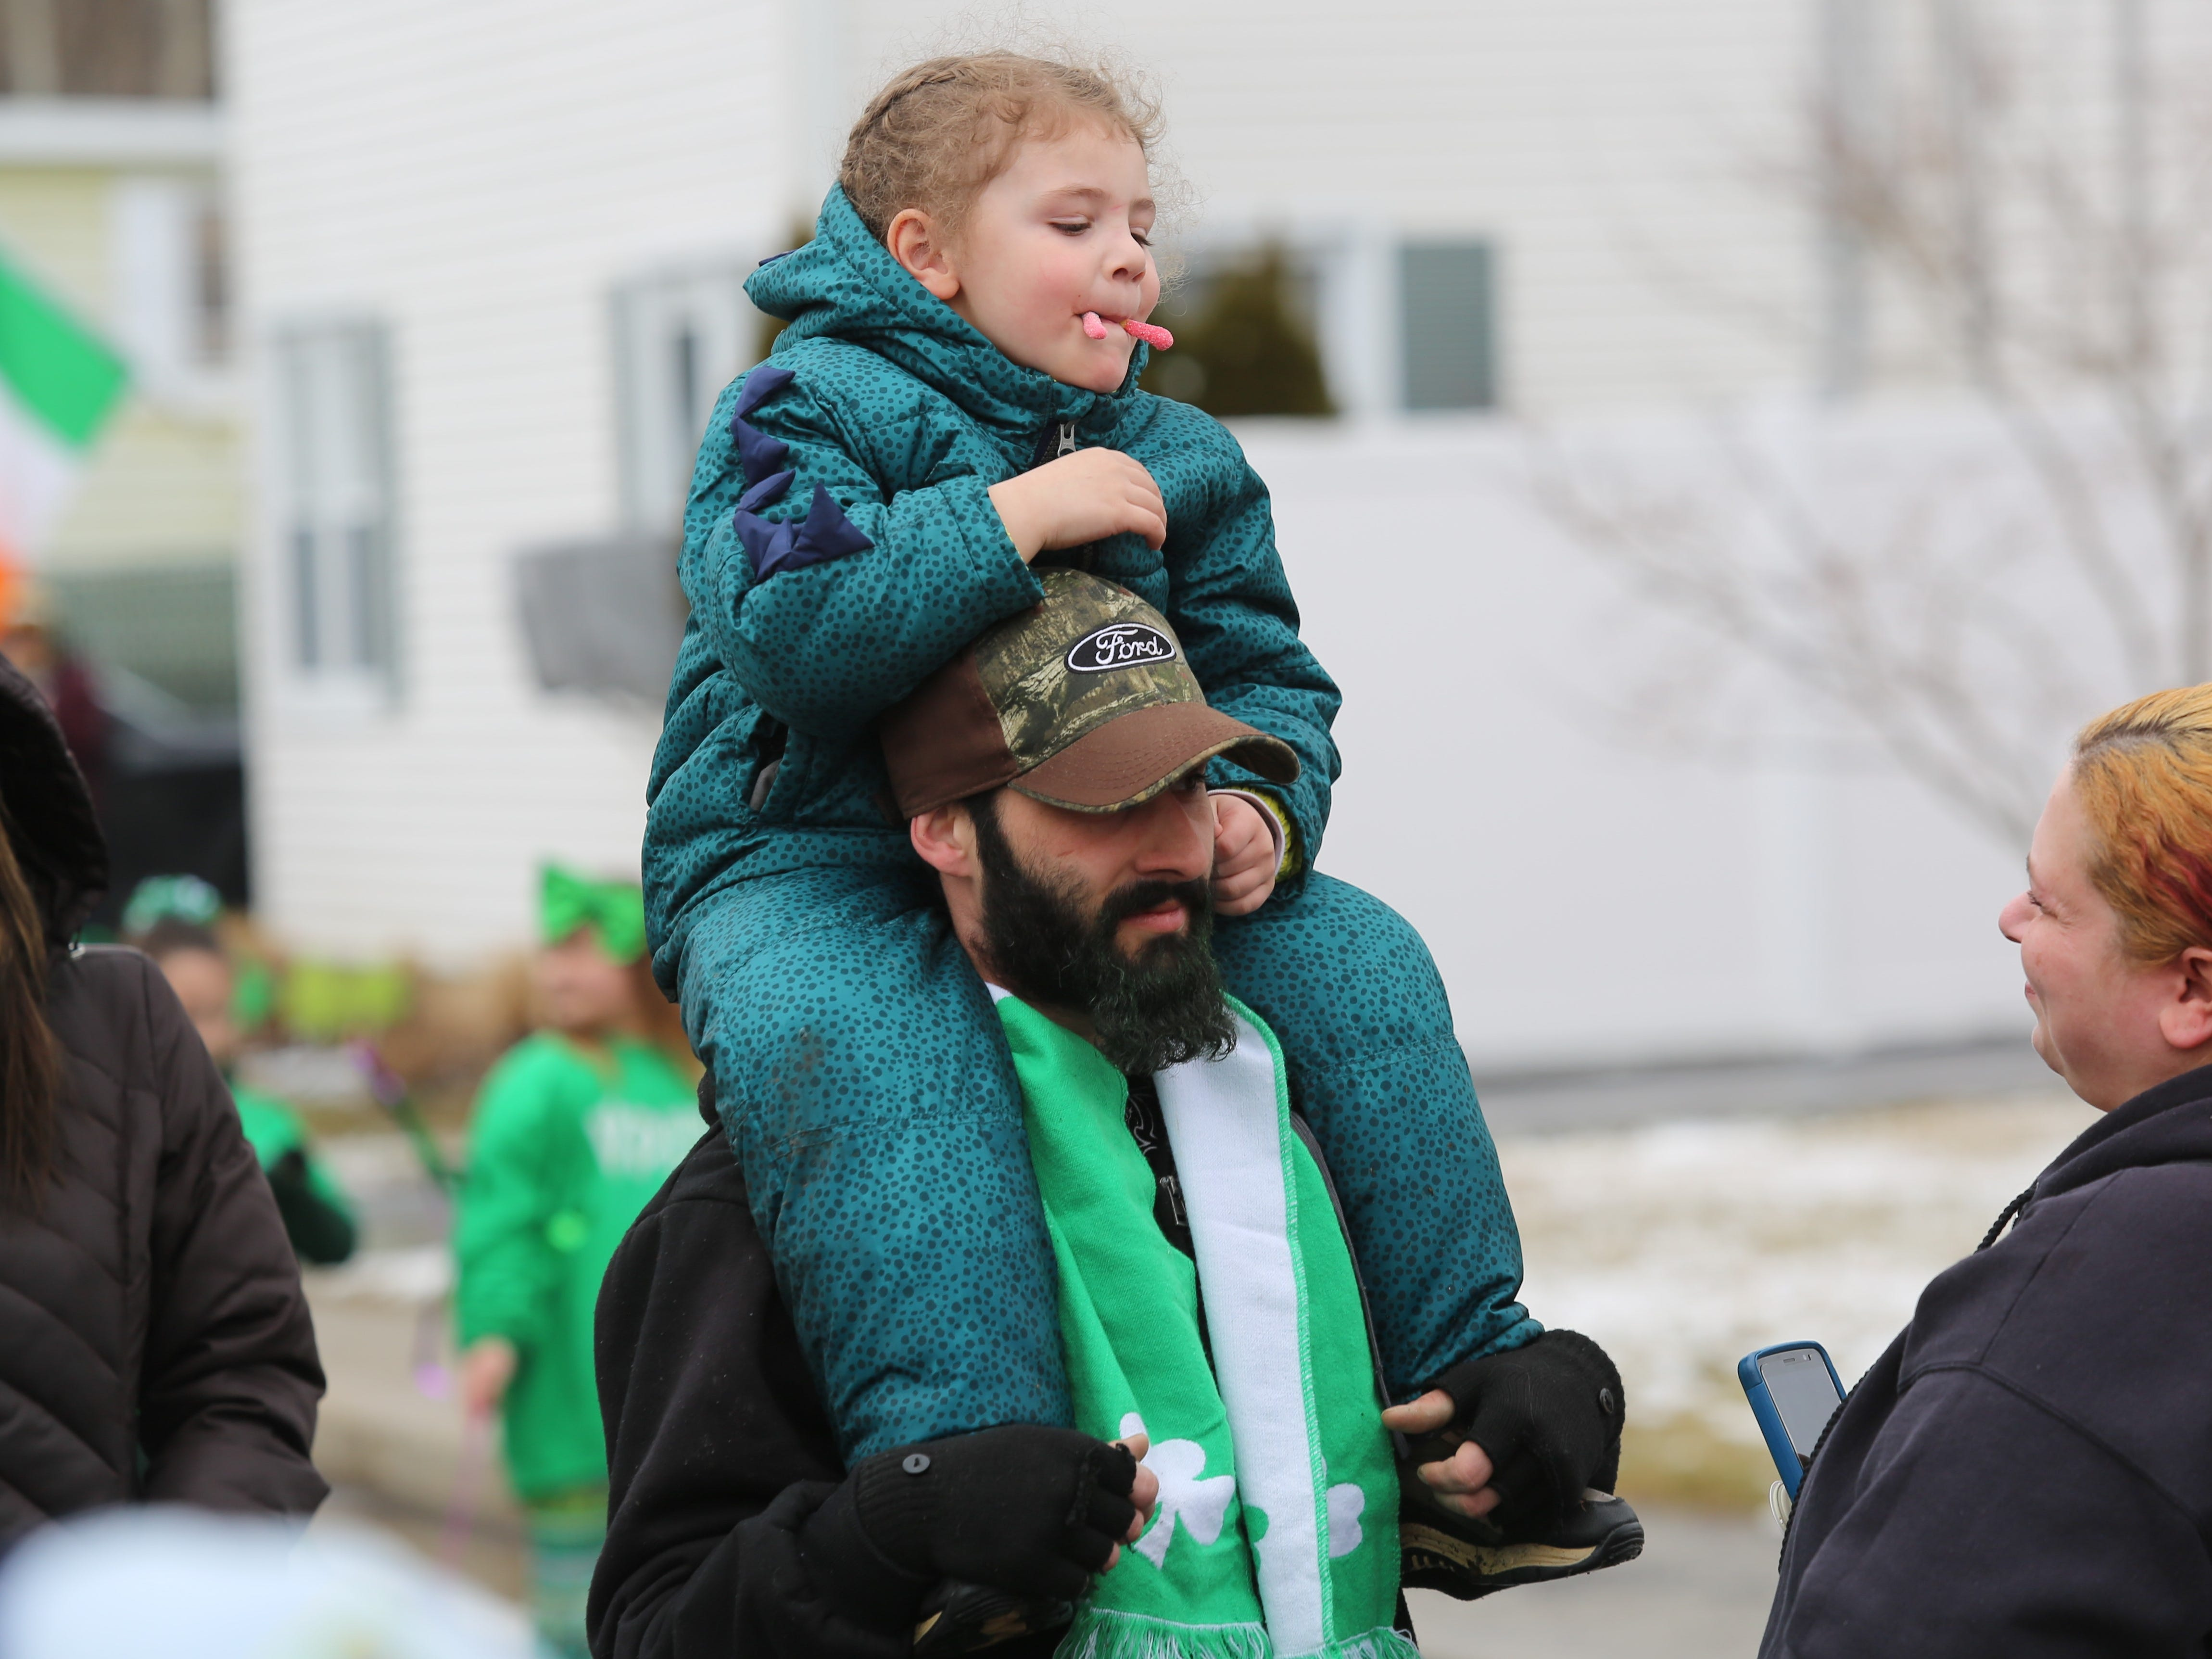 Joanie Kitzweger (right) looks on as Michael Ruseskas, 4, eats a gummy worm sitting on the shoulders of his father, Michael Ruseskas, before the Dutchess County St. Patrick's Day Parade on Saturday.